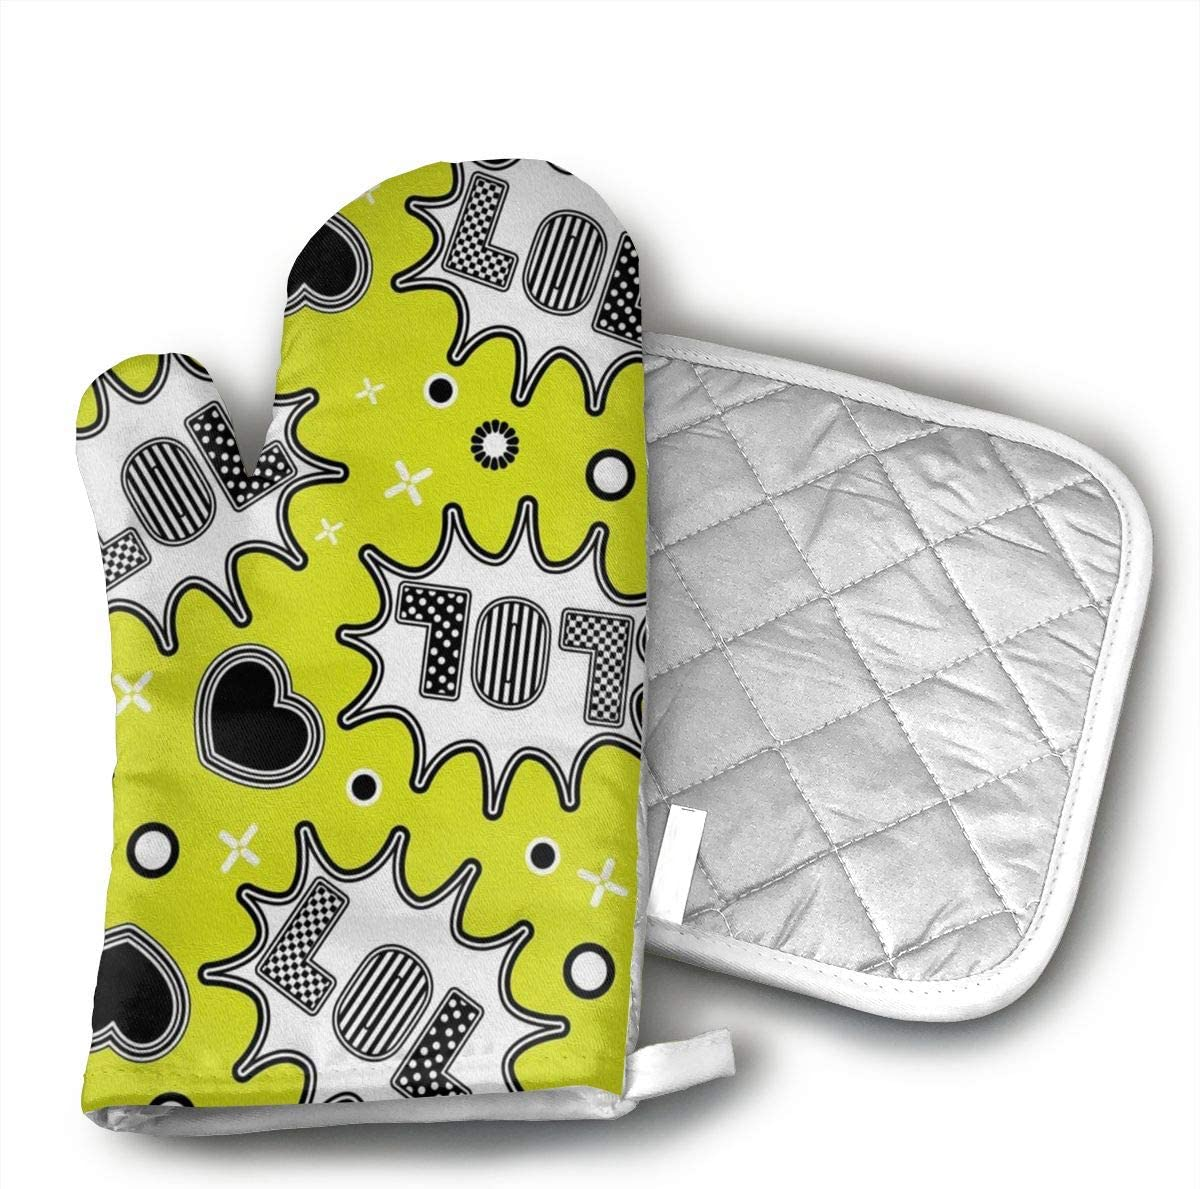 ZYZILYSBS LOL Oven Mitts and Pot Holders Soft Cotton Lining with Non-Slip Surface Heat Resistant Oven Gloves for Kitchen BBQ Cooking Baking Grilling Microwave